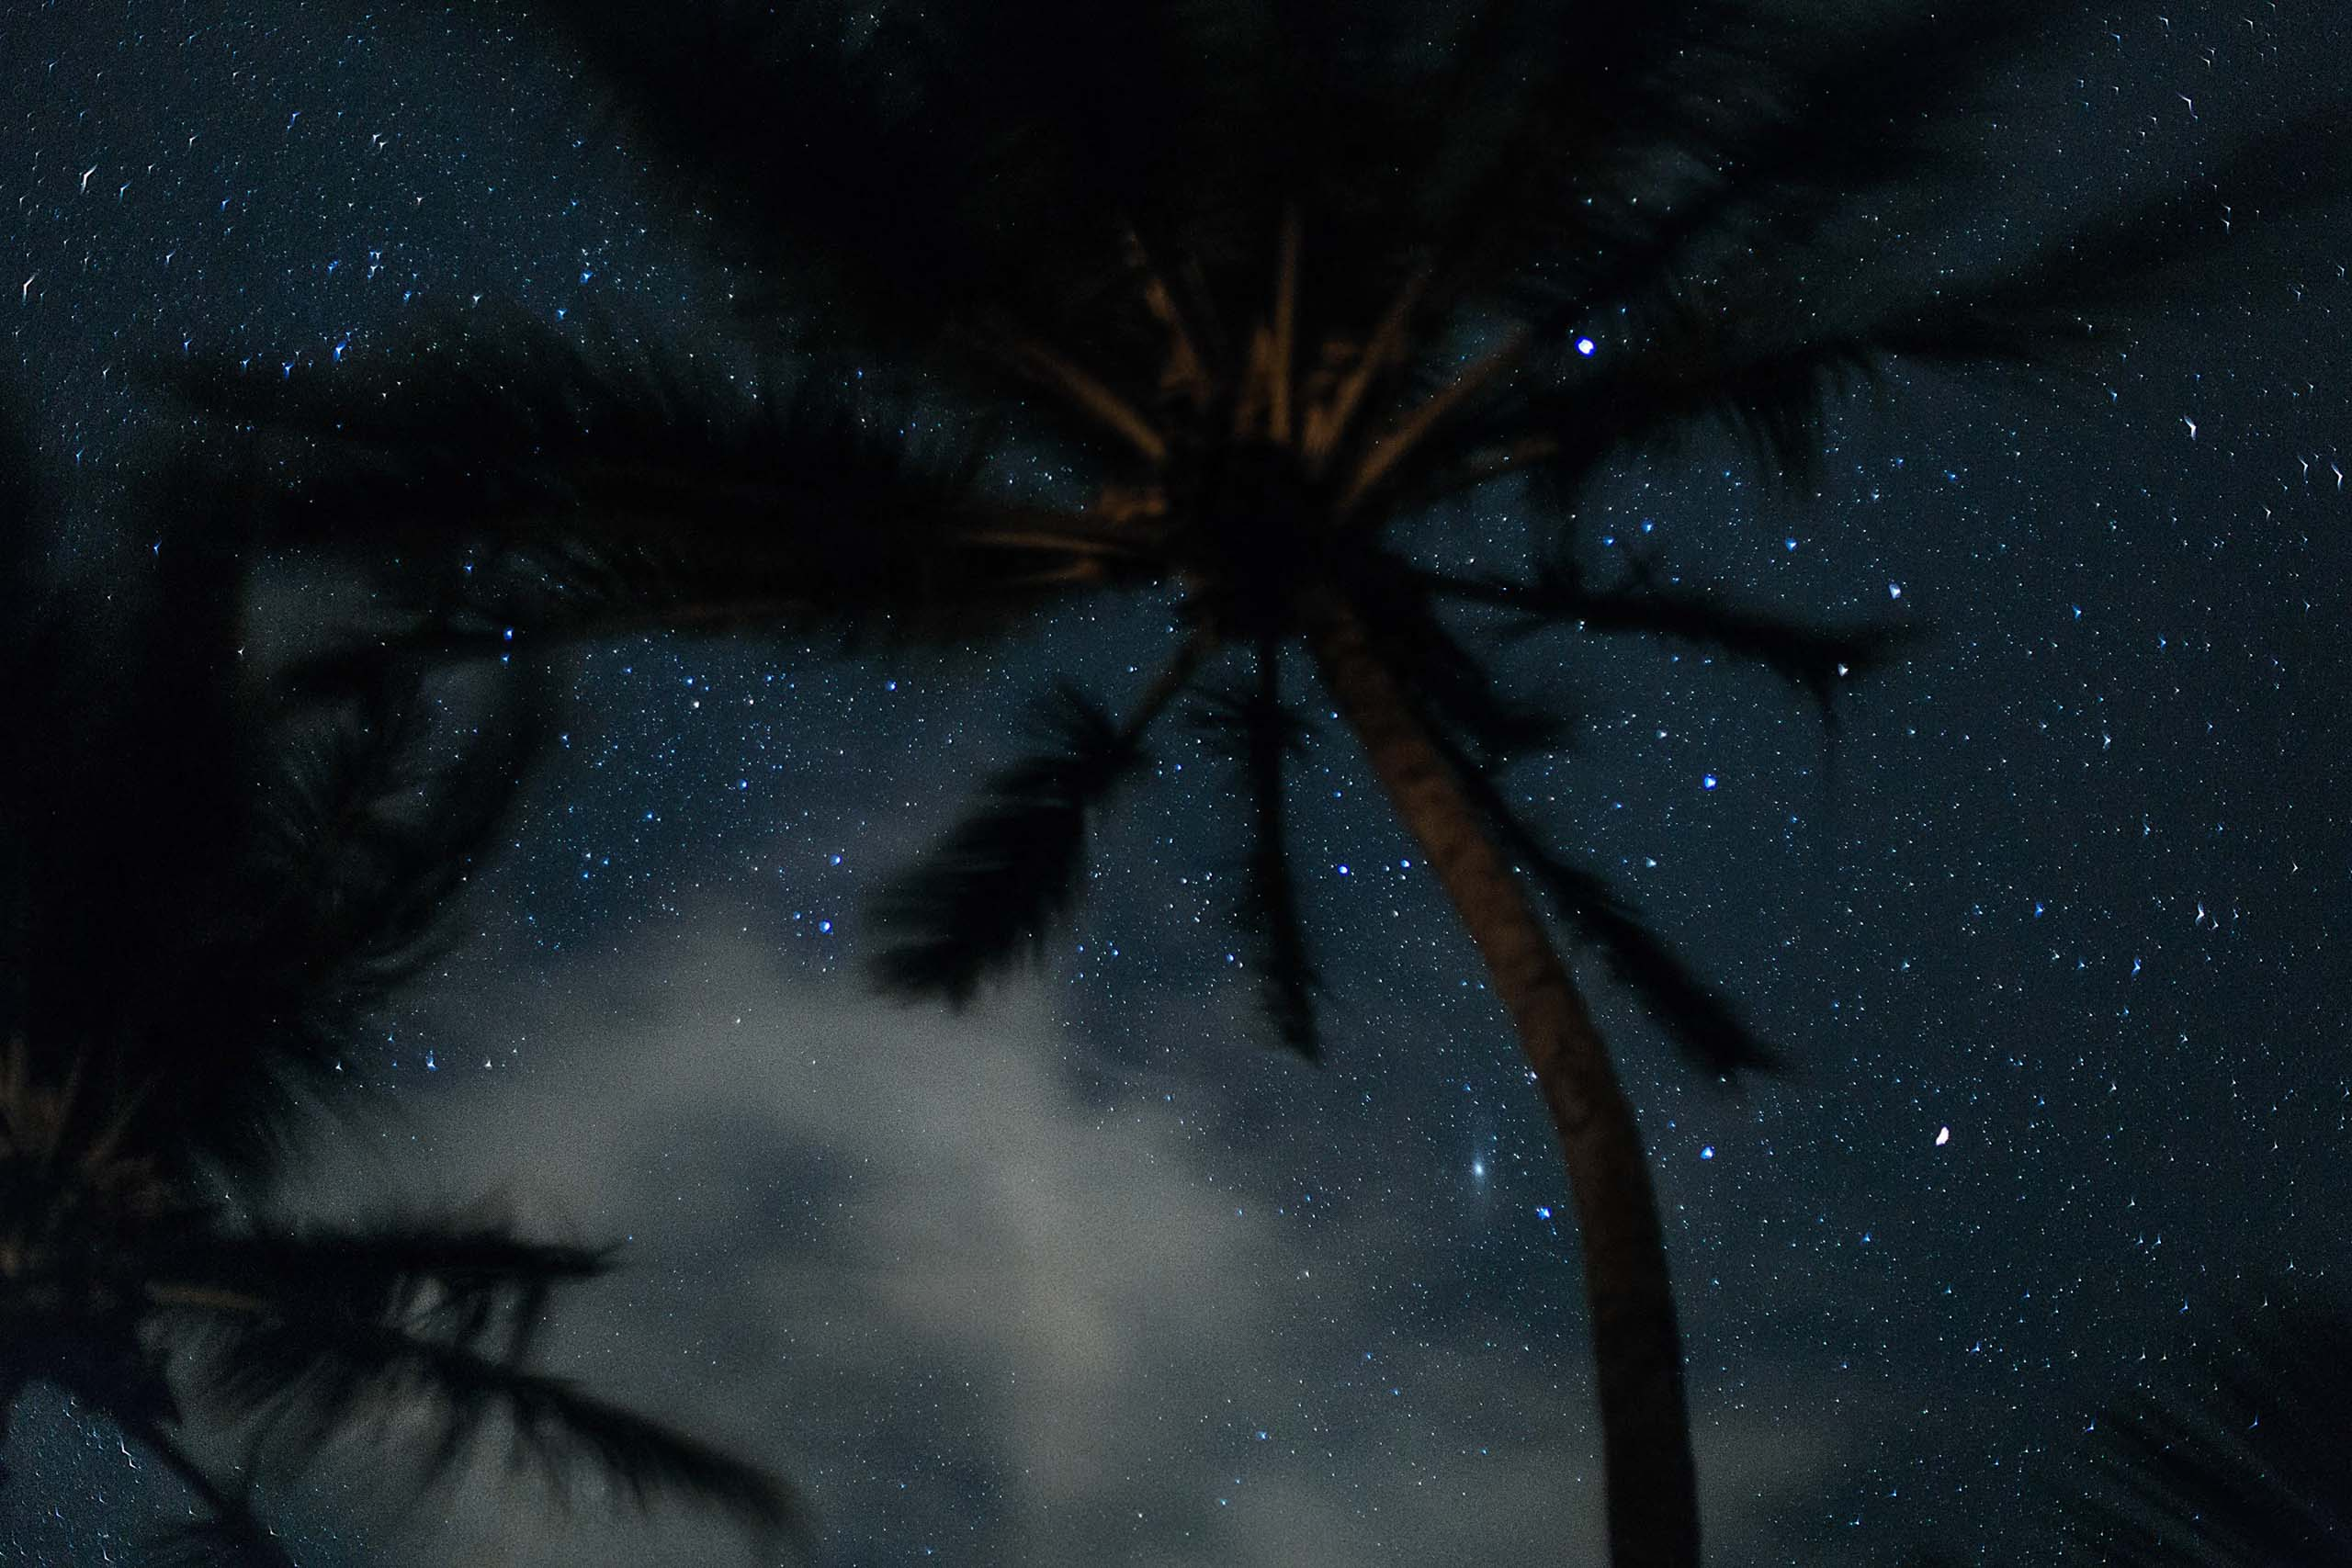 Tropical starry night with palm tree. Photo by Lia Bekyan on Unsplash